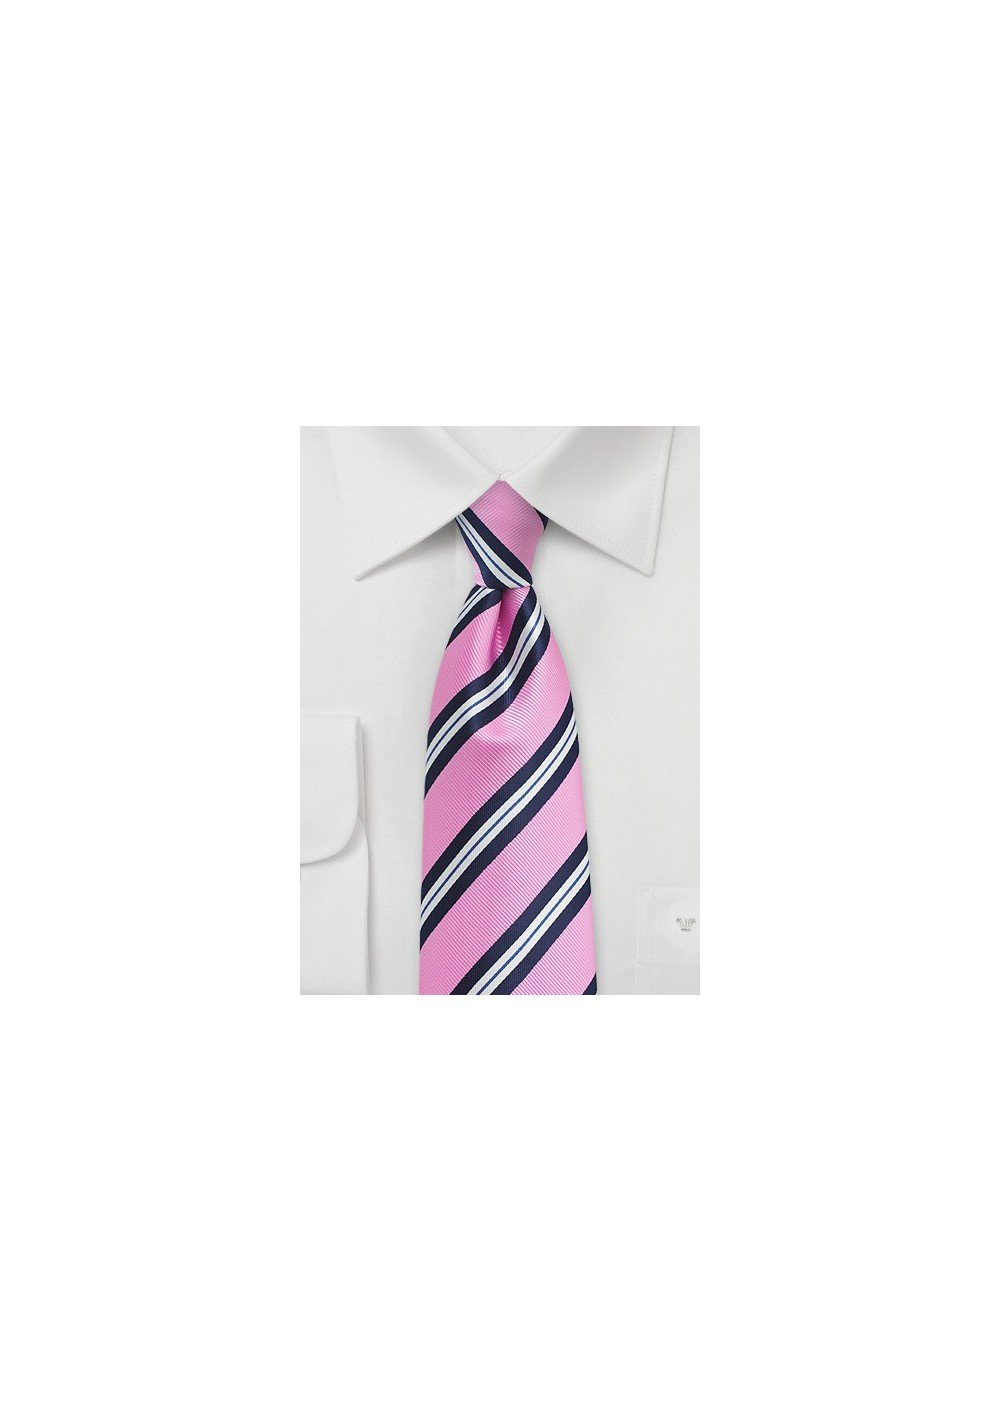 Pink and Blue Repp Stripe Tie in XL